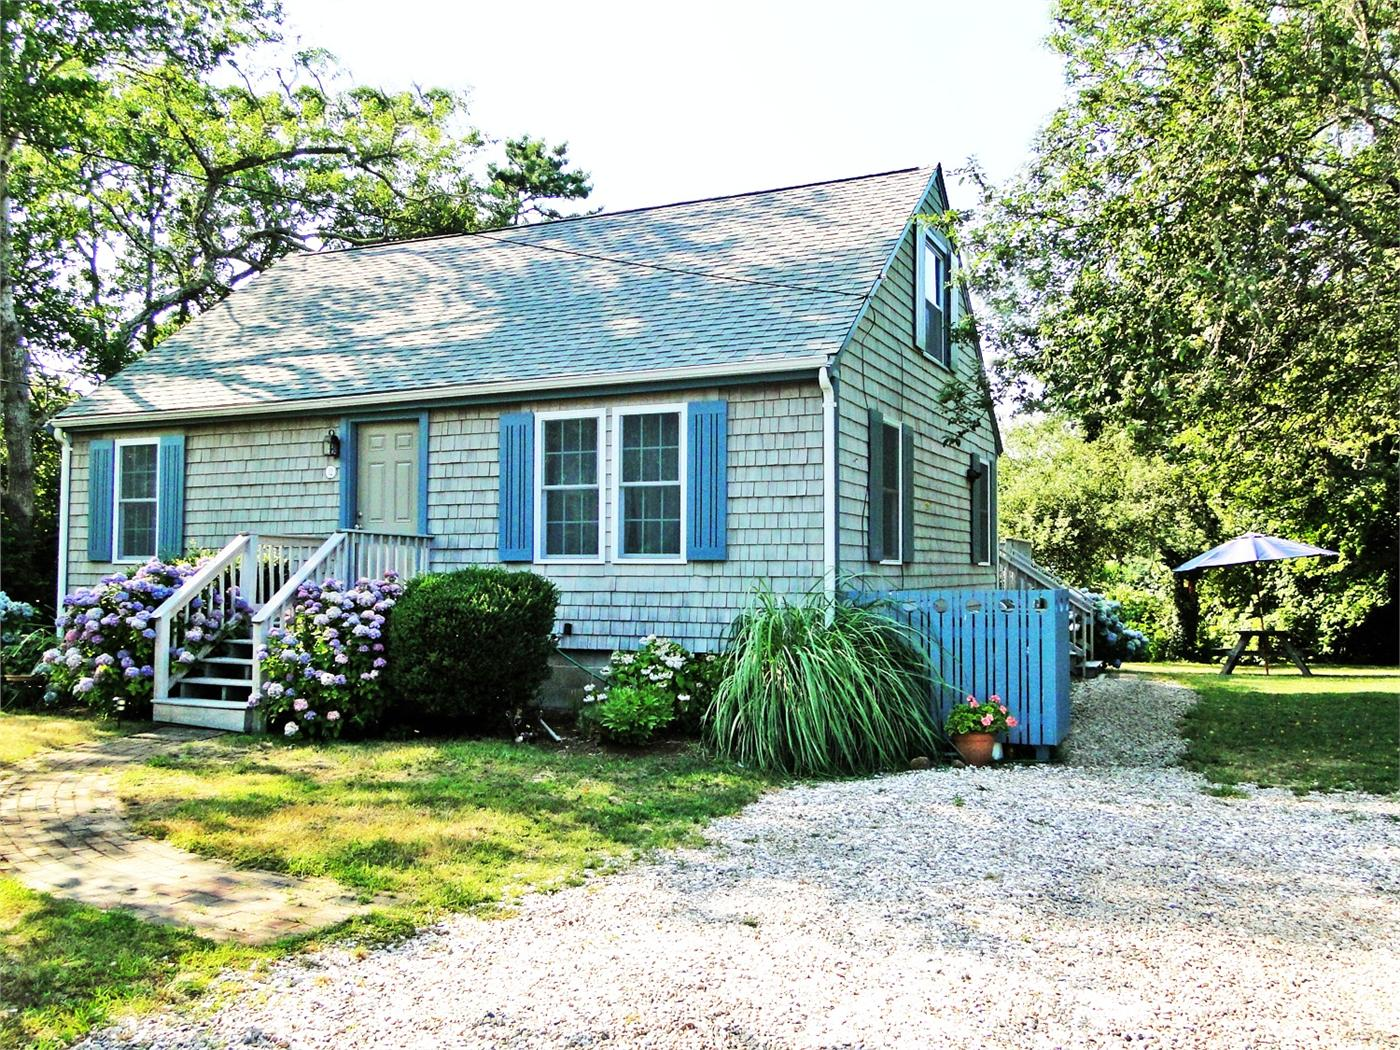 river onehouseoneyear mile parker to rentals vacation com yarmouth s beach home on cod rental house the in cape fantastic walk cottages ma cottage